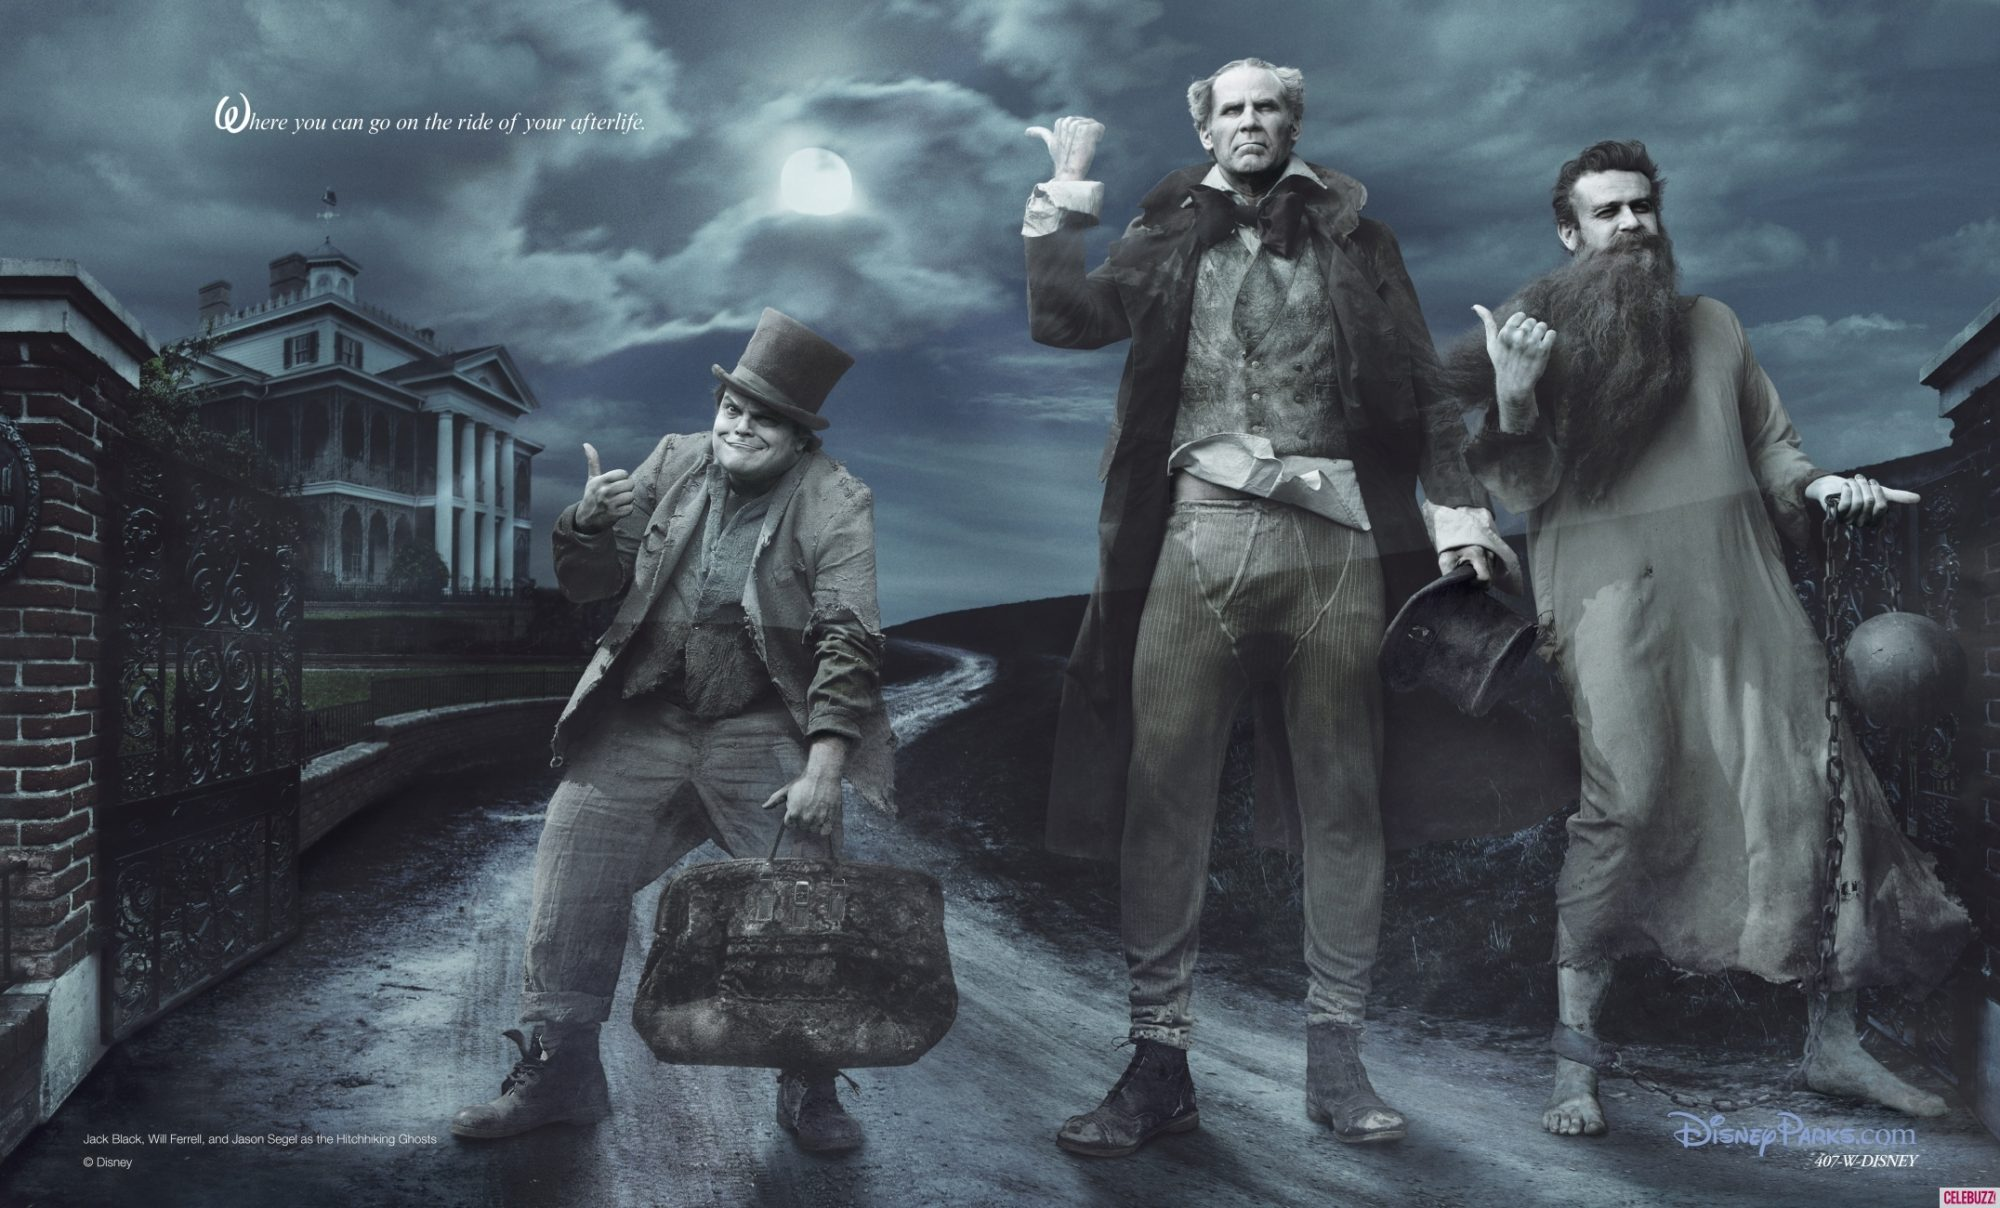 Will Ferrell, Jason Segel, Jack Black are the Hitchhiking Ghosts